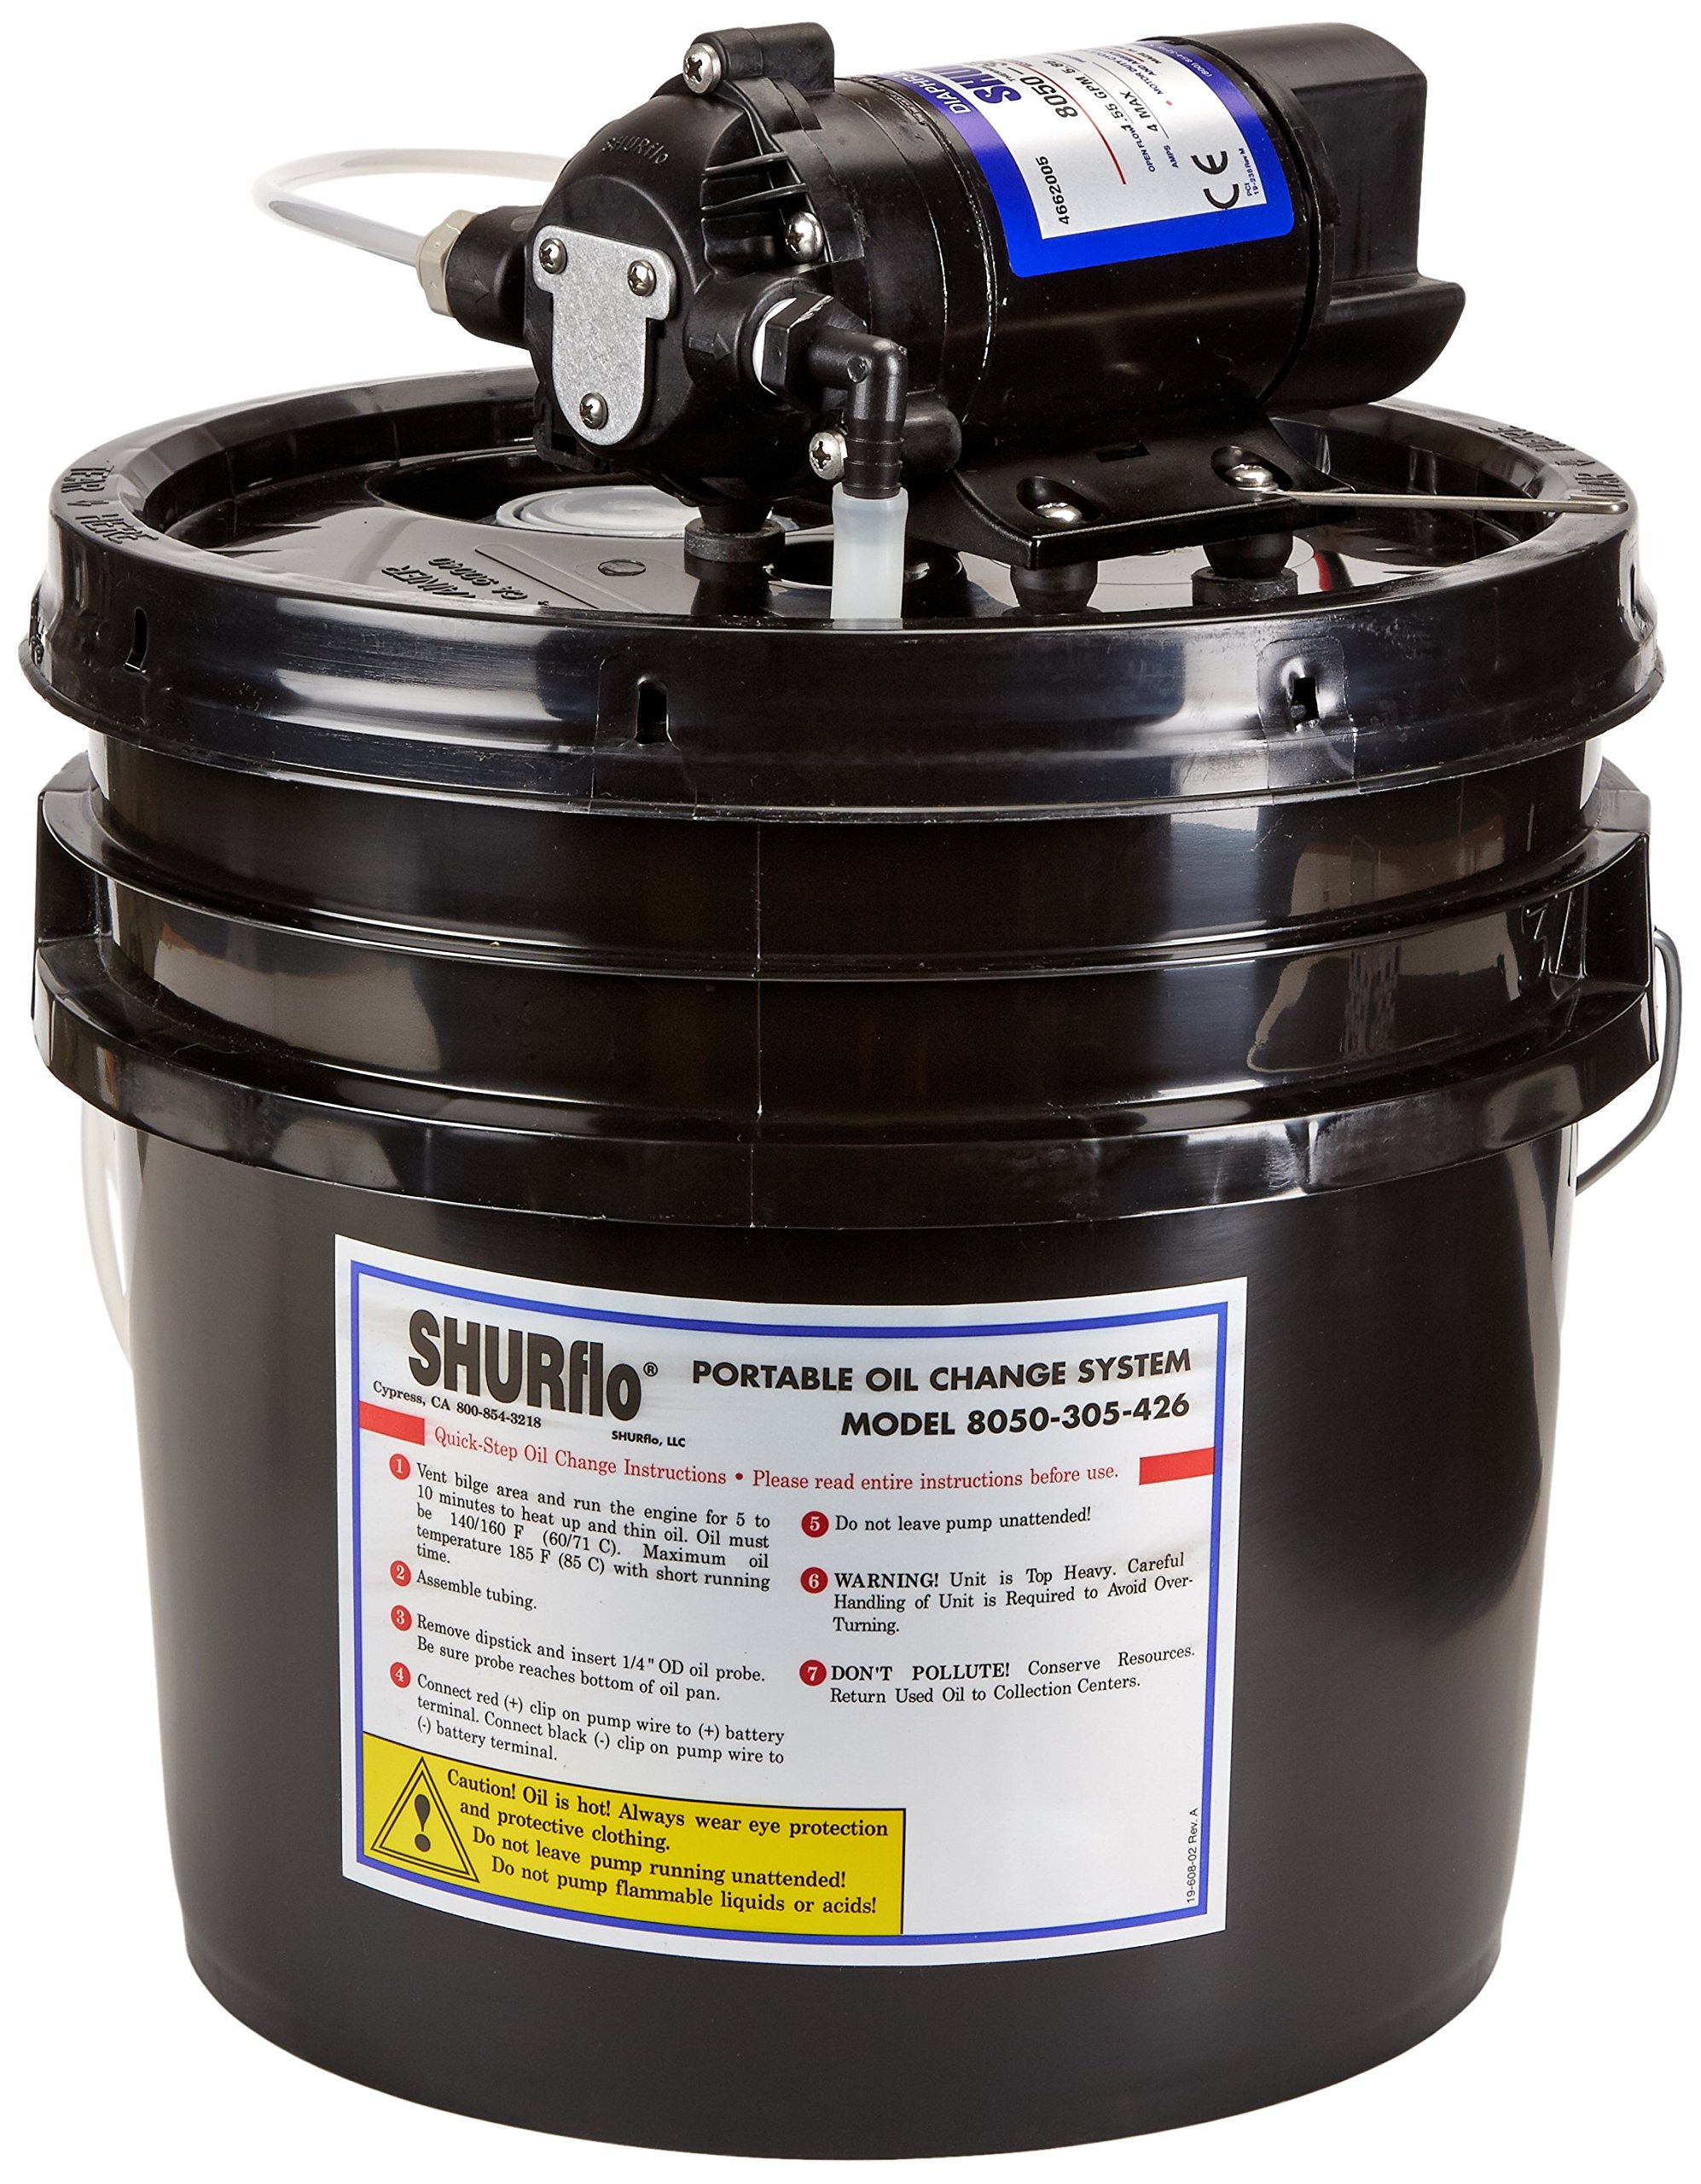 SHURFLO 8050305426 Oil Change System by SHURFLO